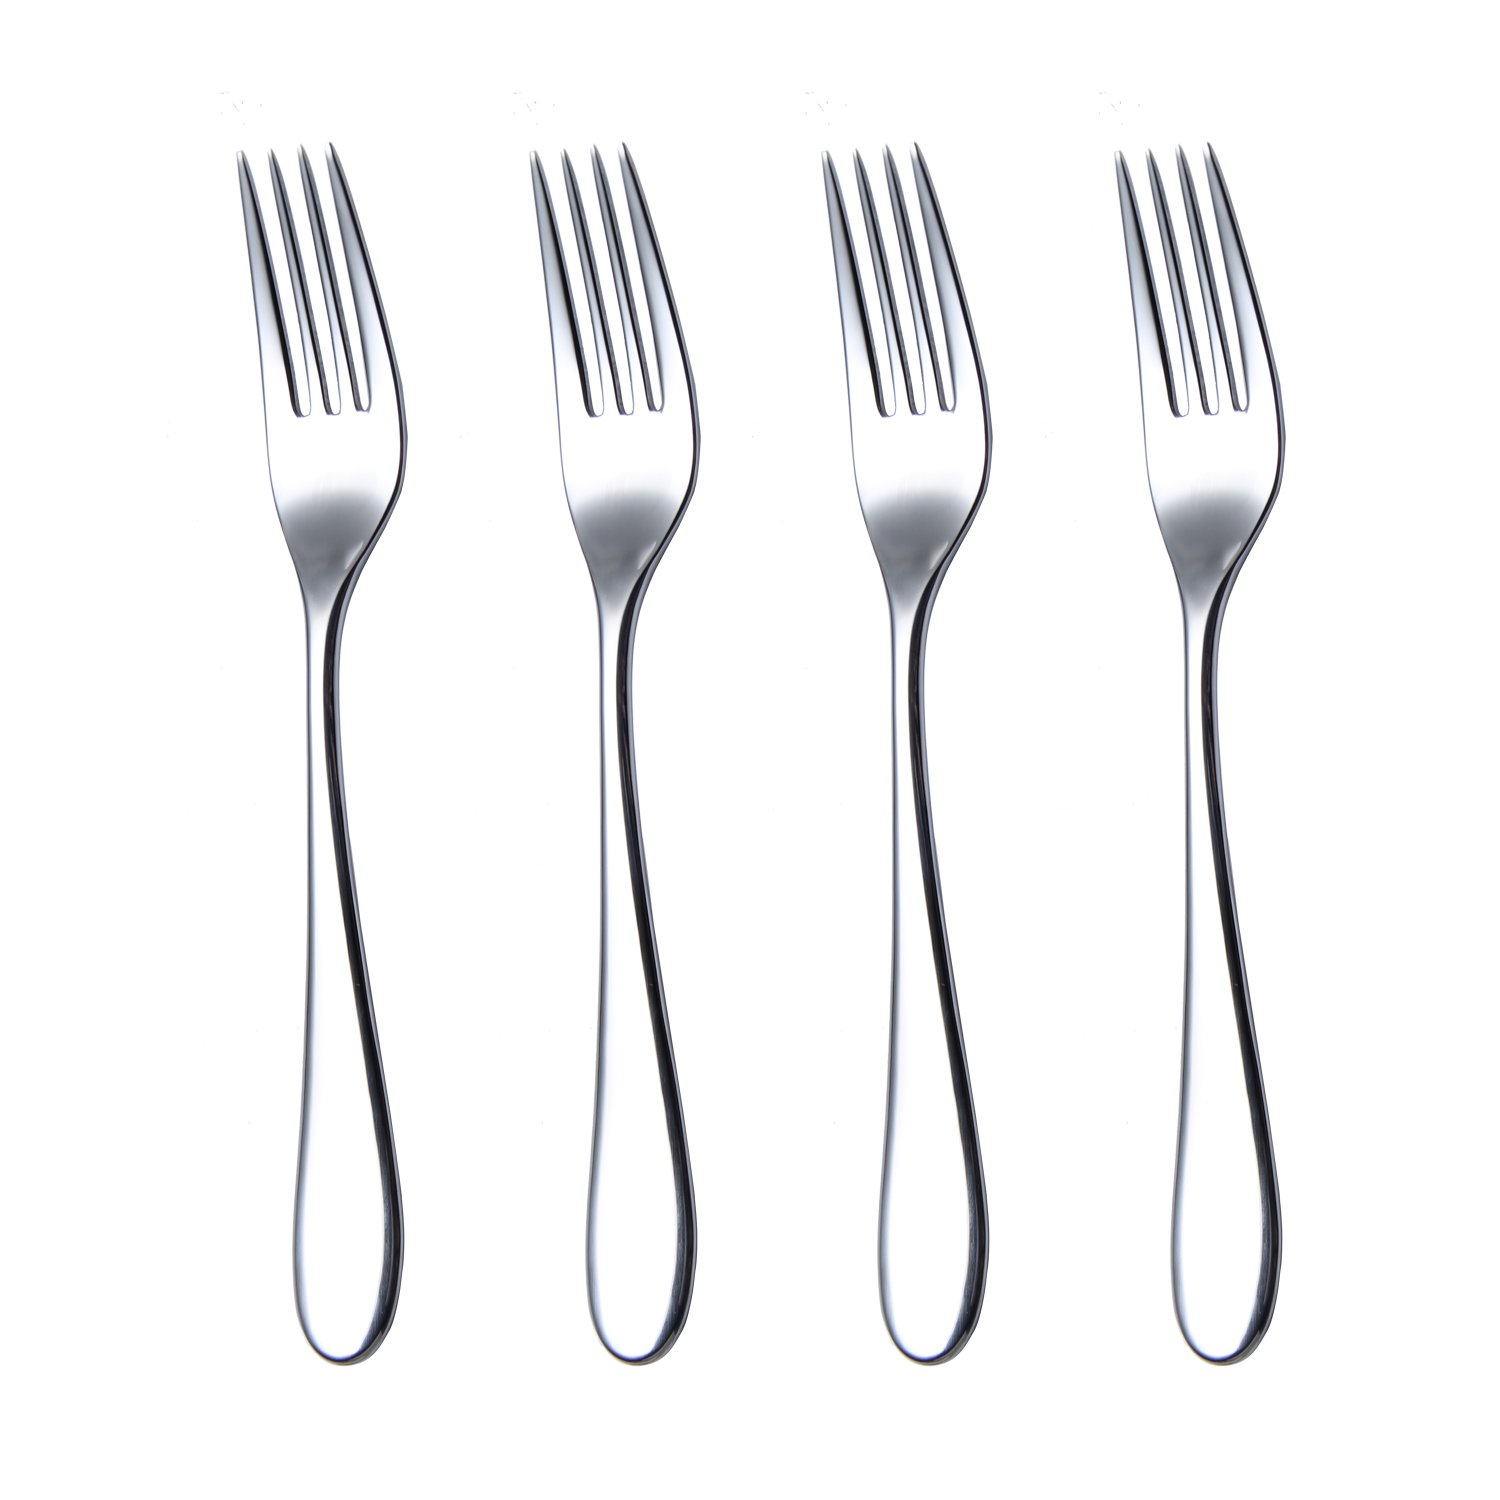 HISSF Dinner Forks, Marquette 18/10 Fine Stainless Steel Dinner Forks Set of 4, 8.26 Inches